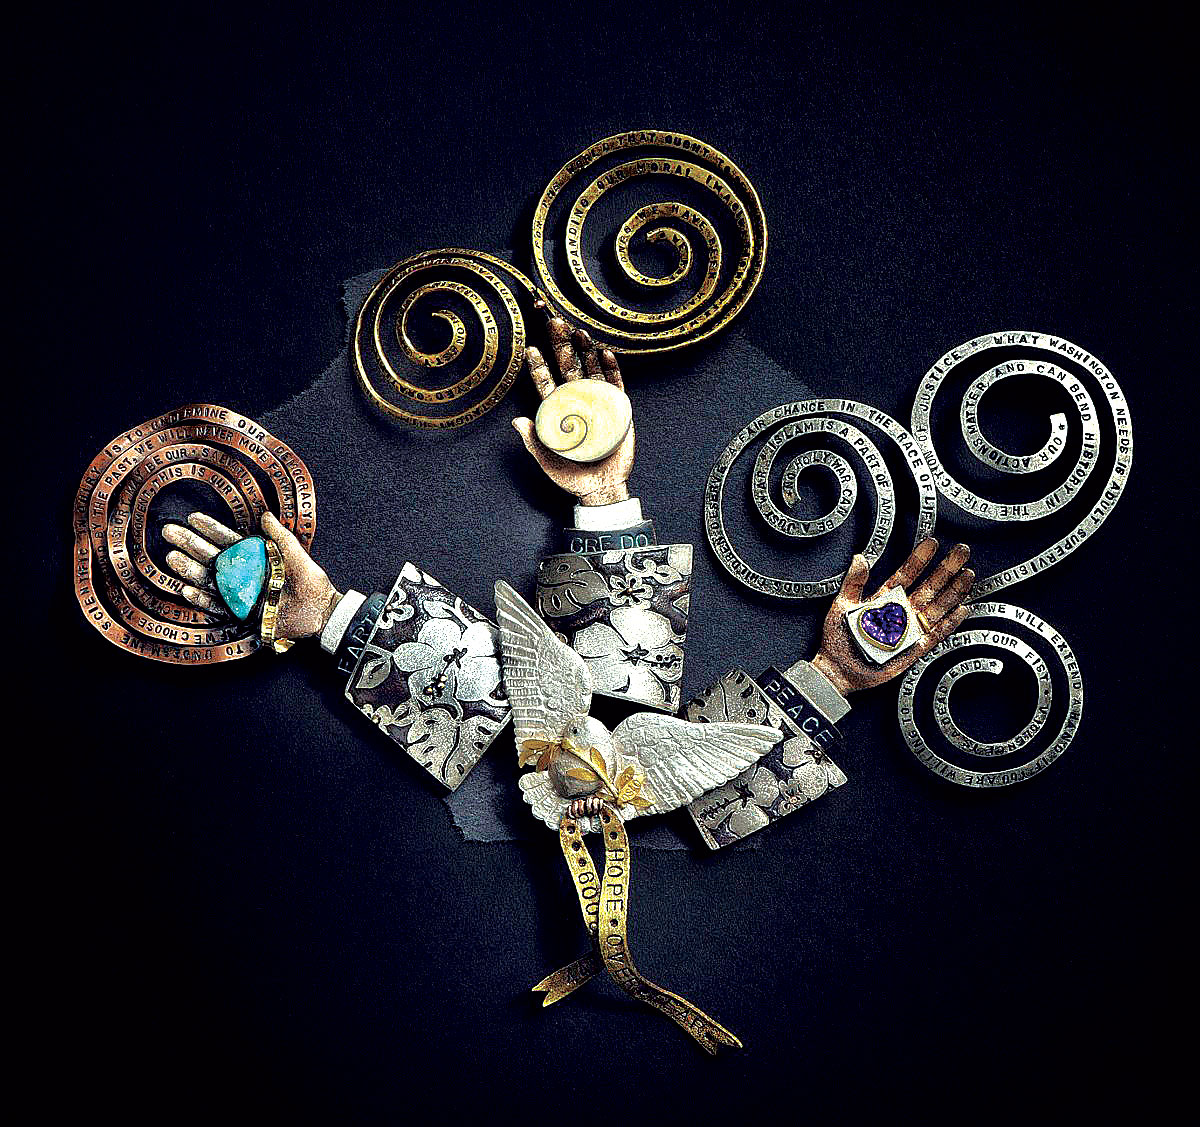 OBAMA, MAN OF THE YEAR, 2009 NOBEL PRIZE. Suite of four brooches: Hope over fear, Earth, Credo, and Peace of sterling silver, fine silver, eighteen karat gold,  shakudo ,  shibuichi , copper, brass, drusy chrysocolla, small operculum, amethyst, 2010. The four-part assembly of brooches was created for an exhibition held at Facèré Gallery to celebrate its gallerist Karen Lorene's seventieth birthday. Seventy artists created seventy jewelry works for the exhibition.